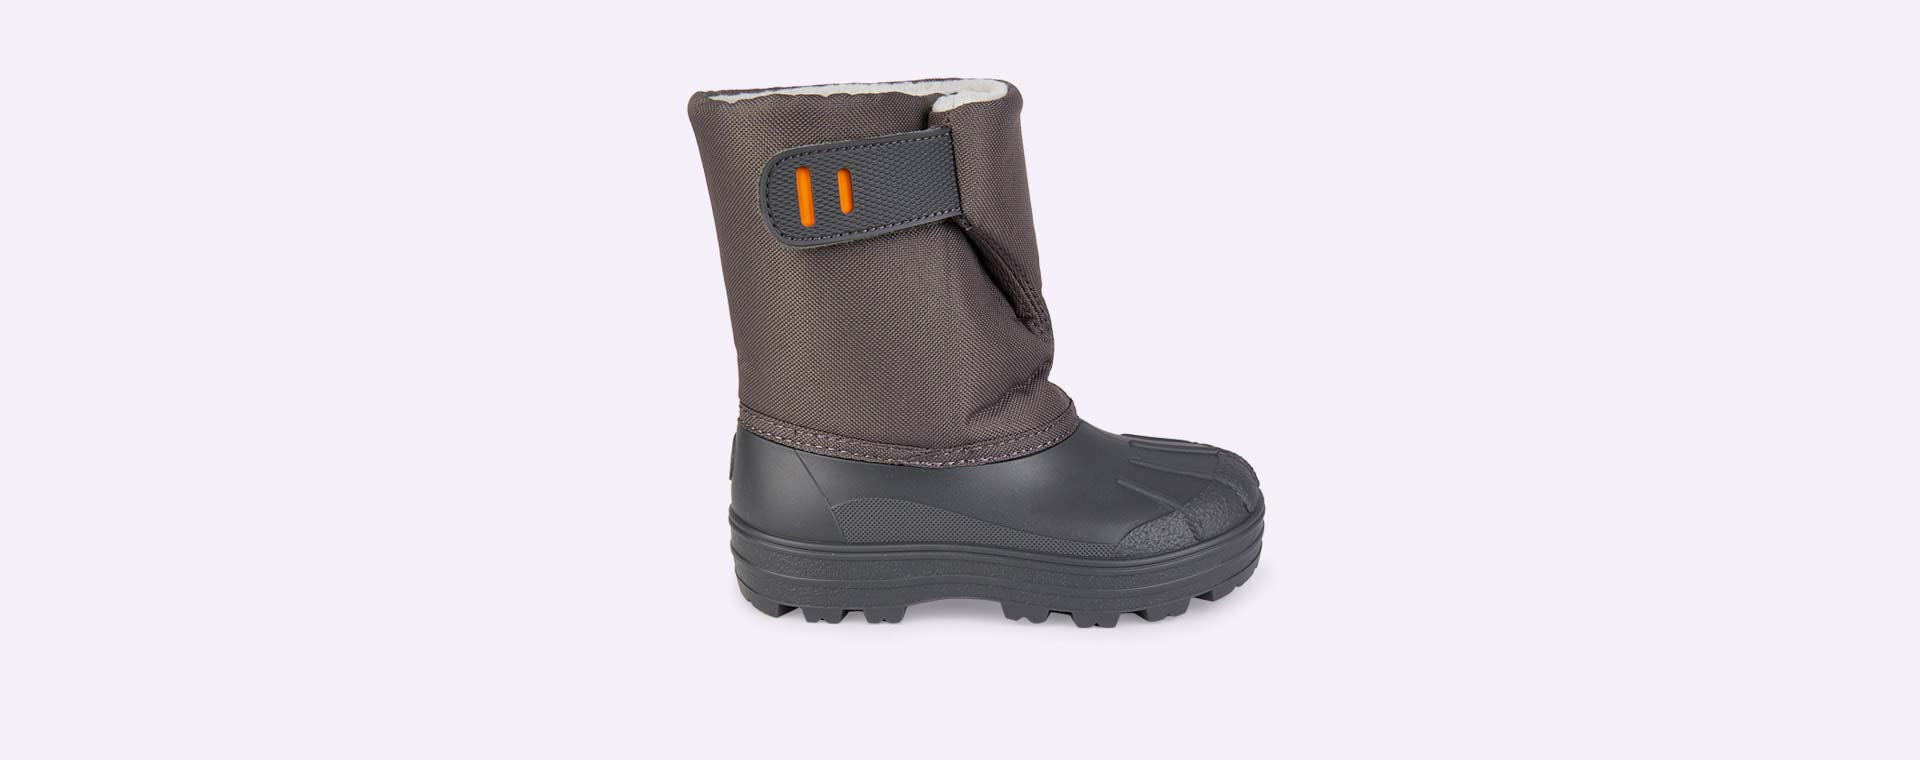 Grey igor Snow Boot